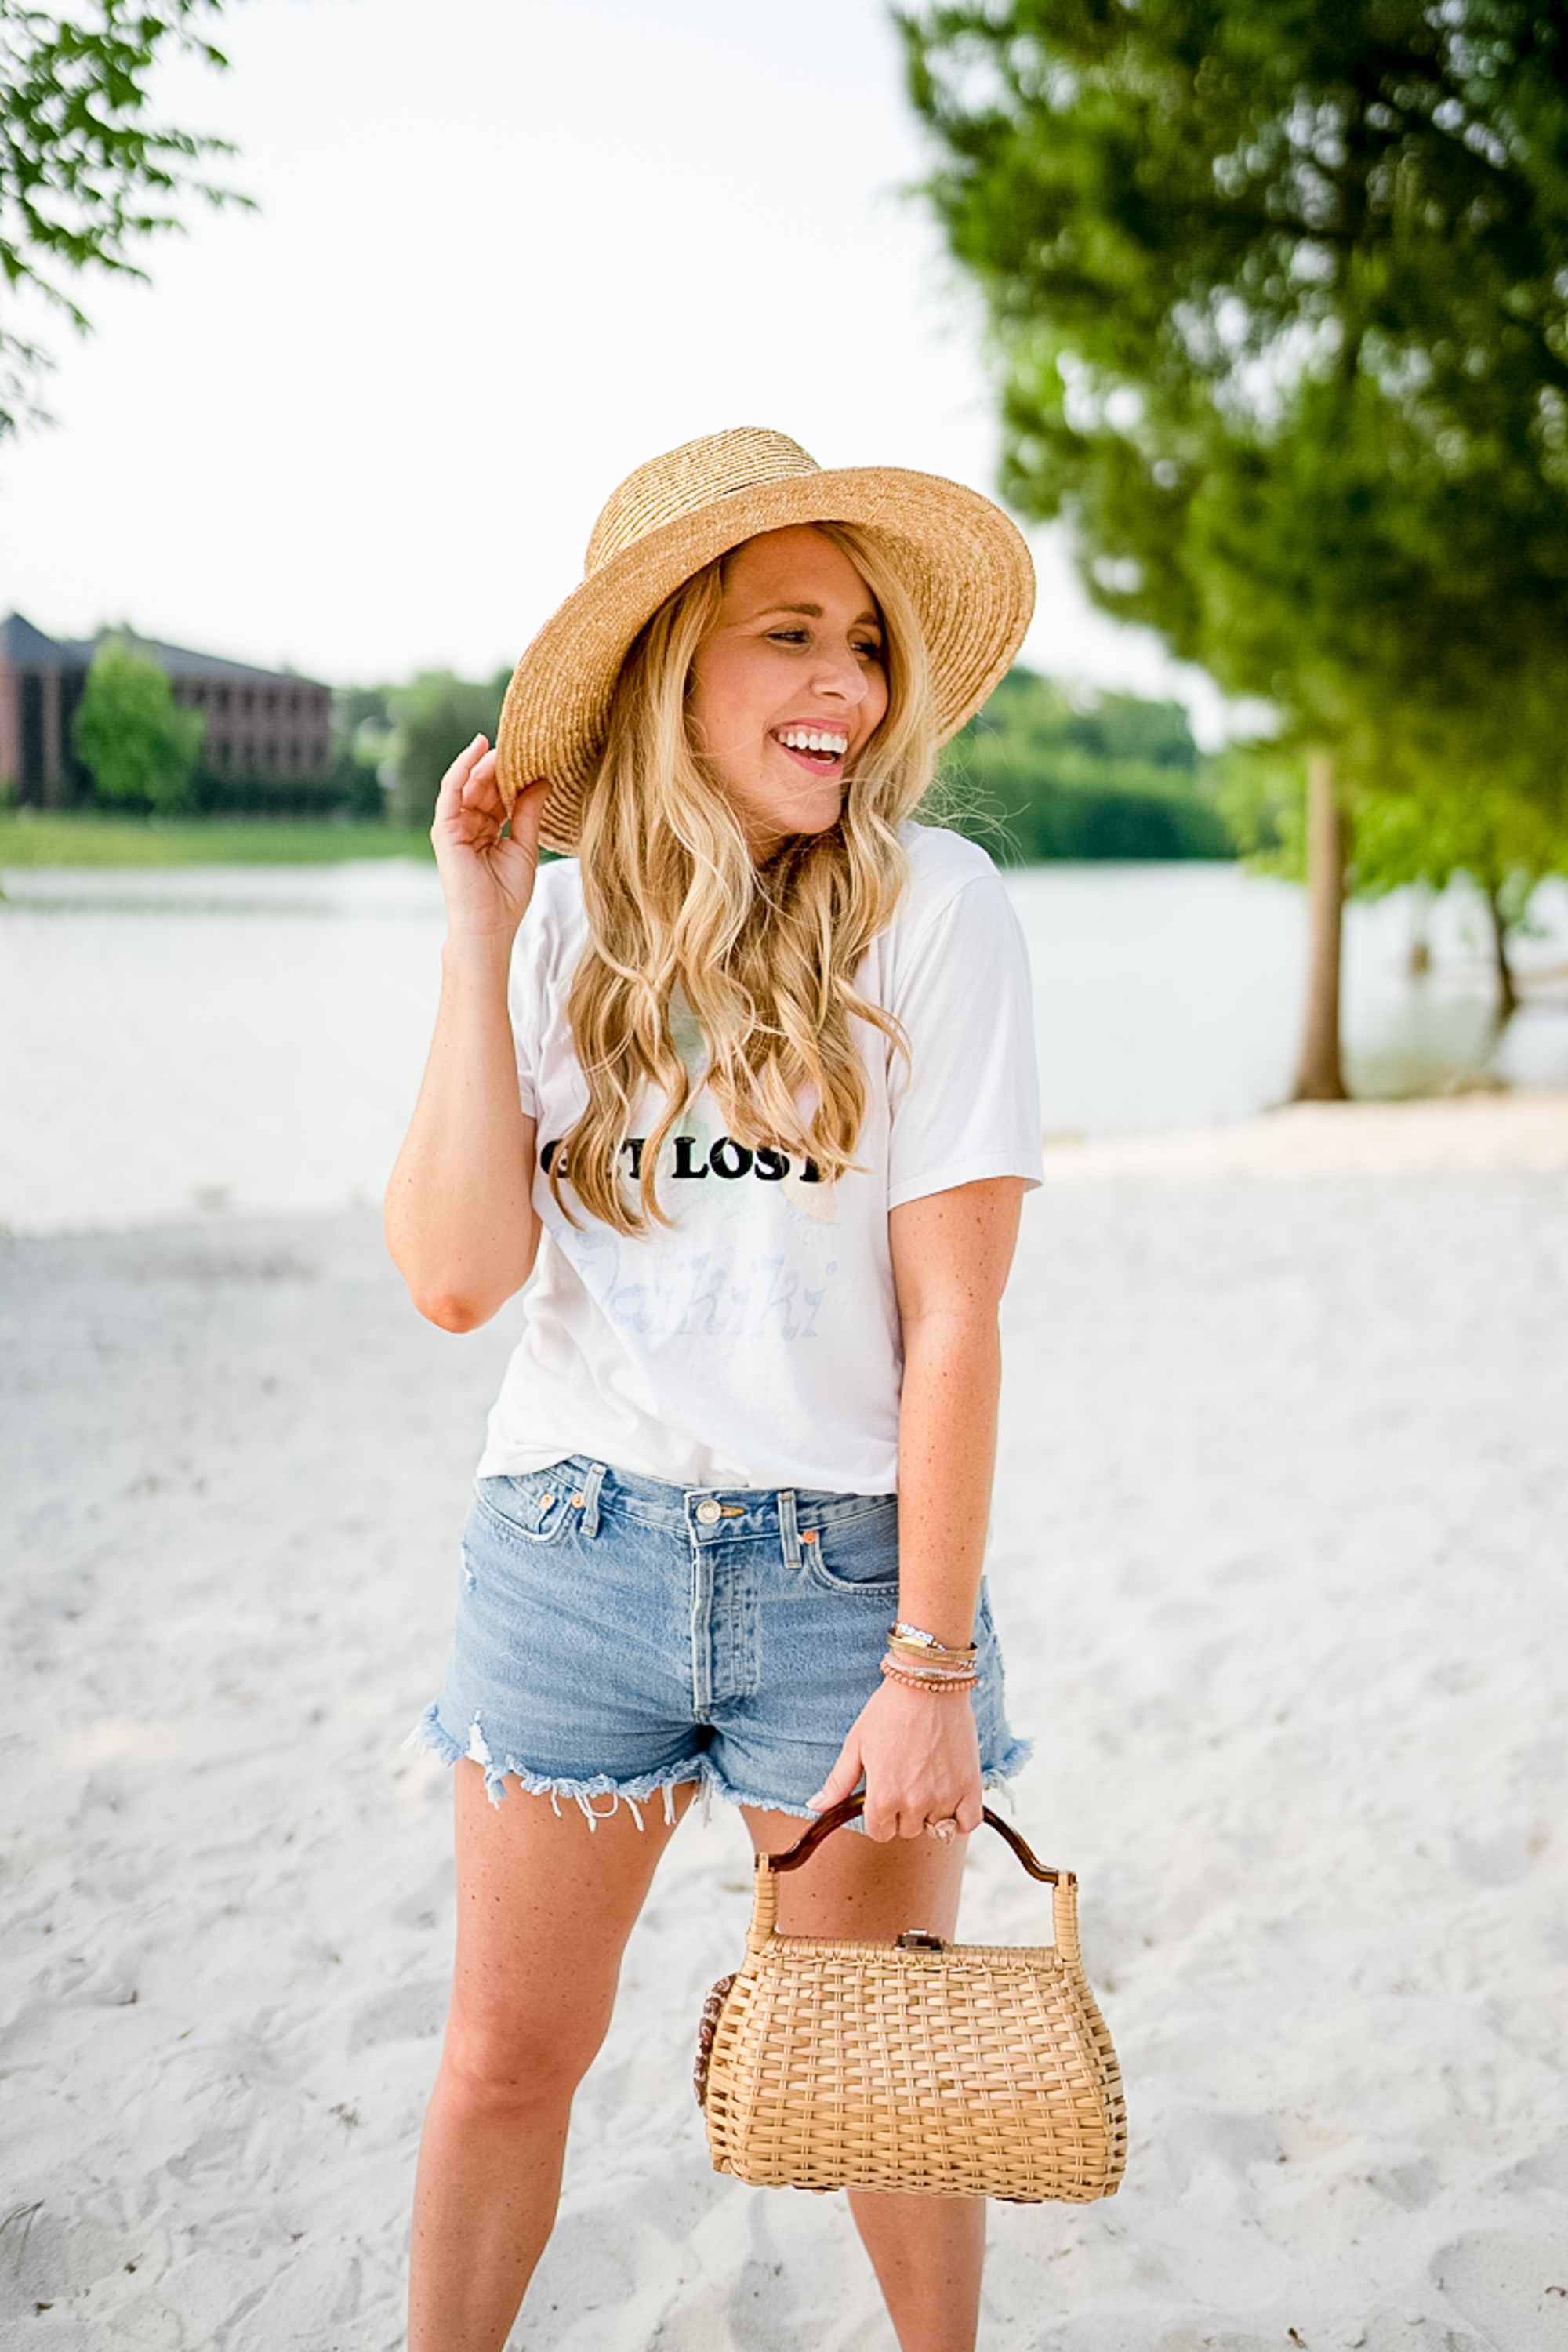 Hot girls awesome thick bodies pics The Best Denim Shorts For Thick Thighs Fashion Pearls And Twirls